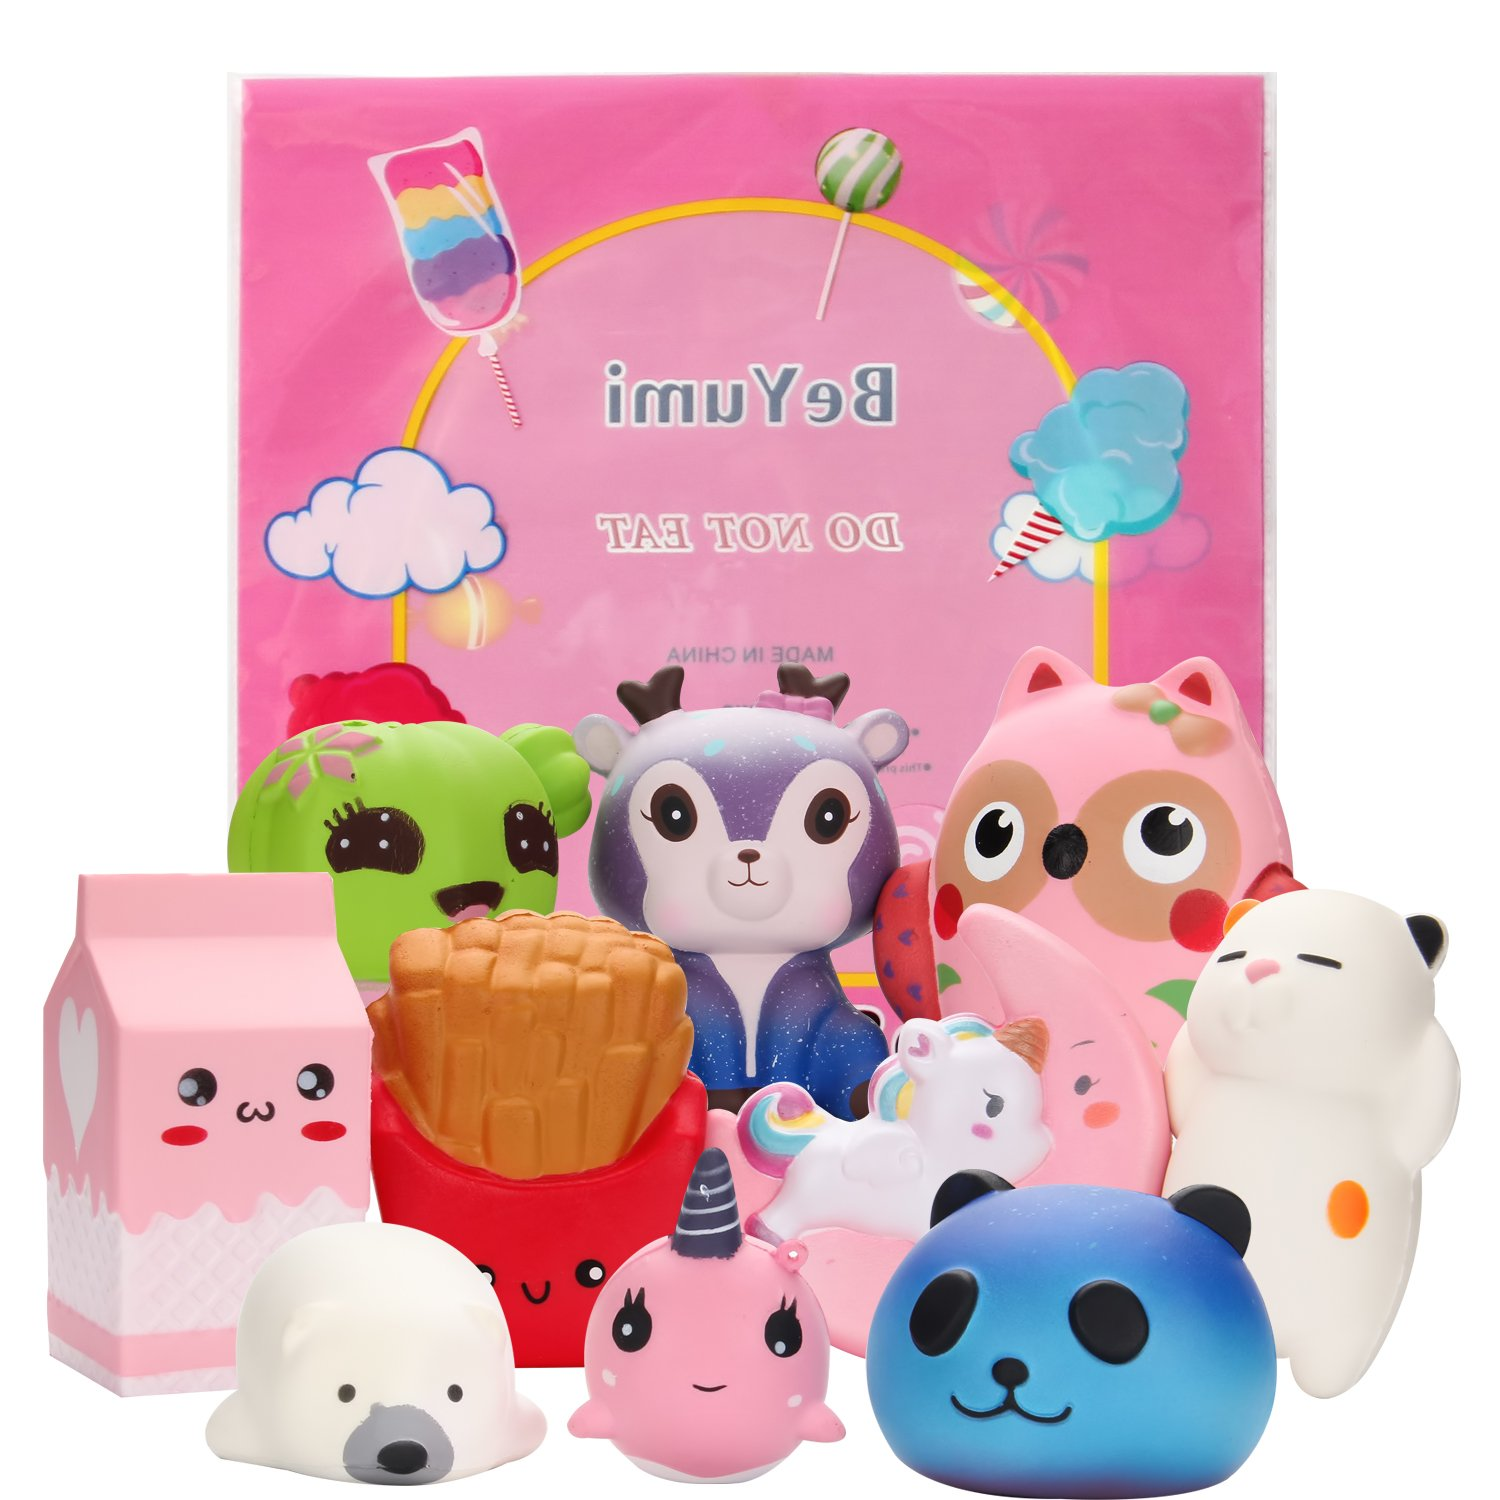 BeYumi Slow Rising Toy, Unicorn, Panda, Deer, Cat Squishy Toy, Kawaii Jumbo 10 Pcs Cream Scented Simulation Cute Animal & Food Squeeze Toys for Collection Gift, Decorative props Large or Stress Relief by BeYumi (Image #2)